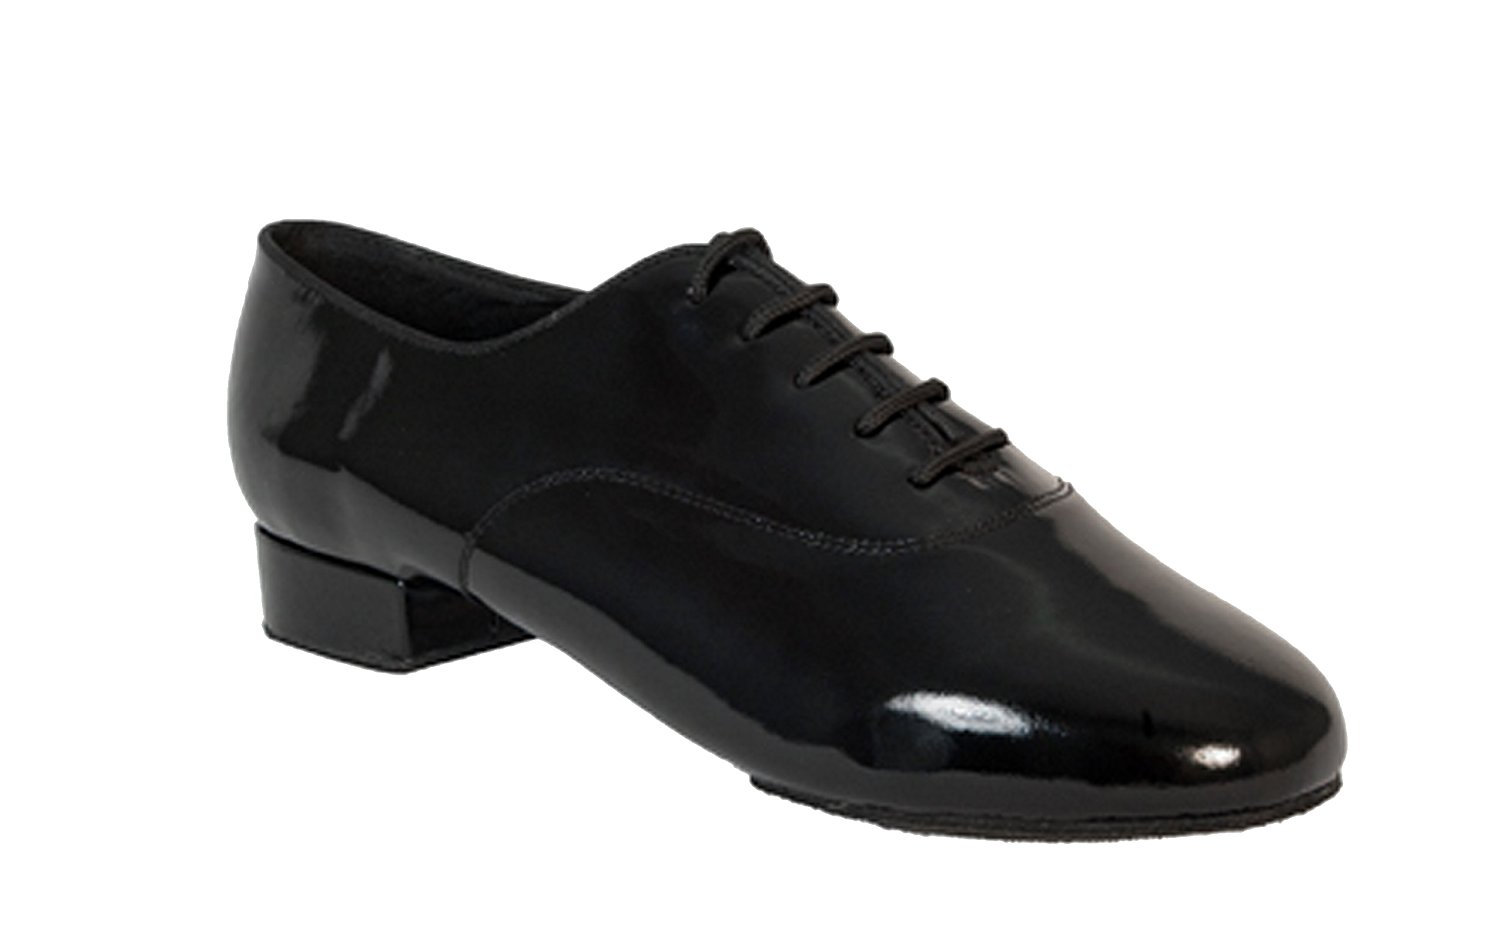 0b1ad3c4ba3c Get Quotations · 335 Ray Rose Windrush Men s Patent Leather Ballroom Dance  Shoes